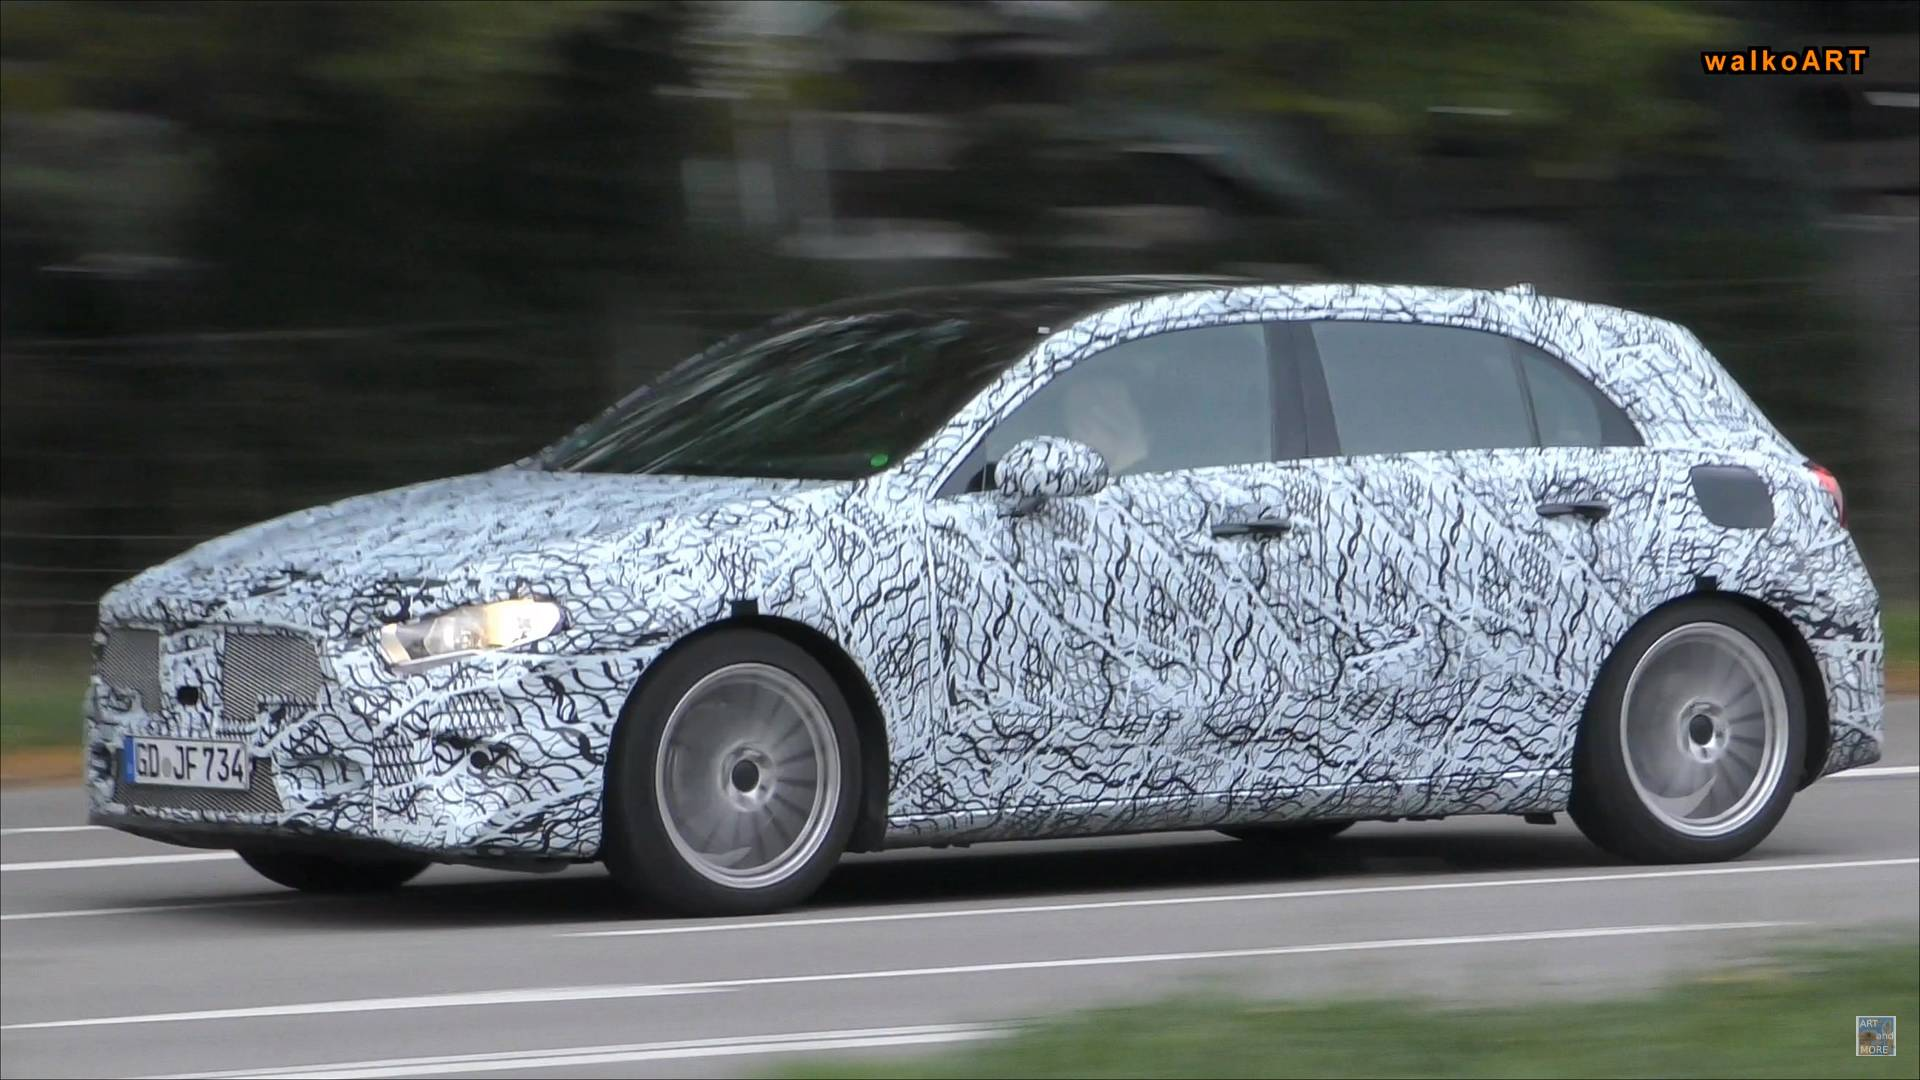 Mercedes Benz A-Class Spied With No Exhaust